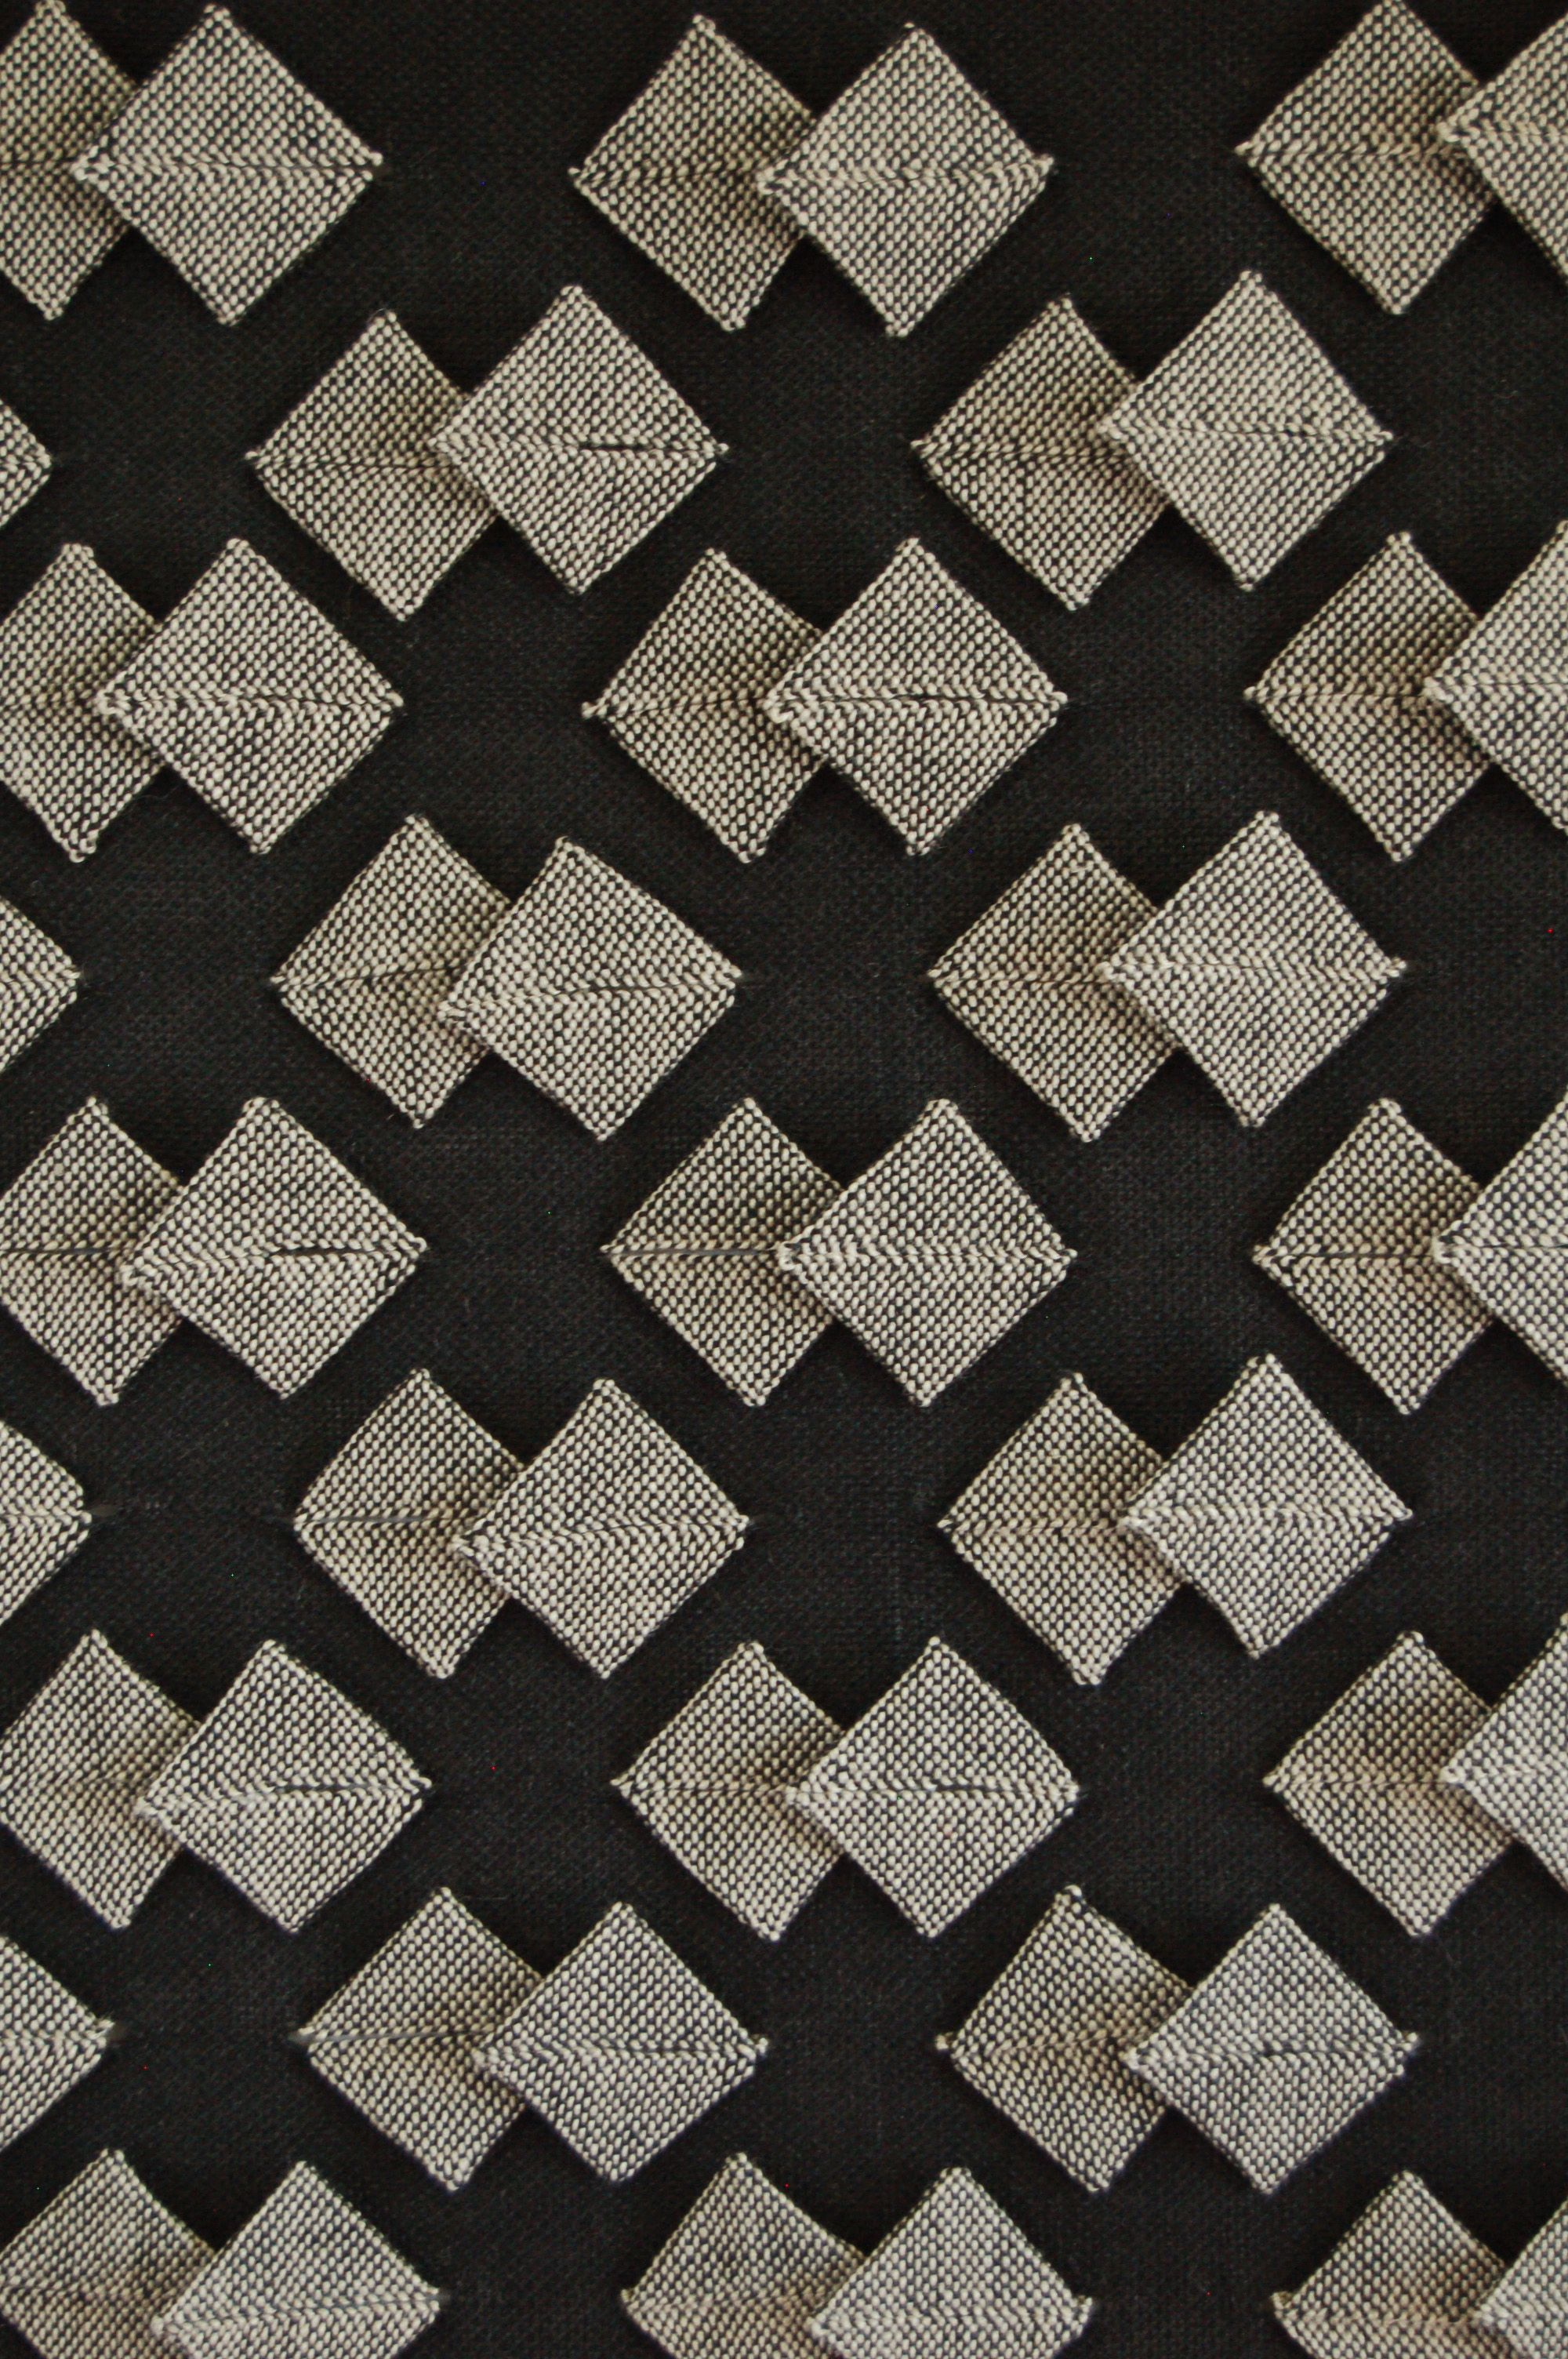 Woven Origami by Susie Taylor.  See more at www.weavingbacktothefuture.blogspot.com